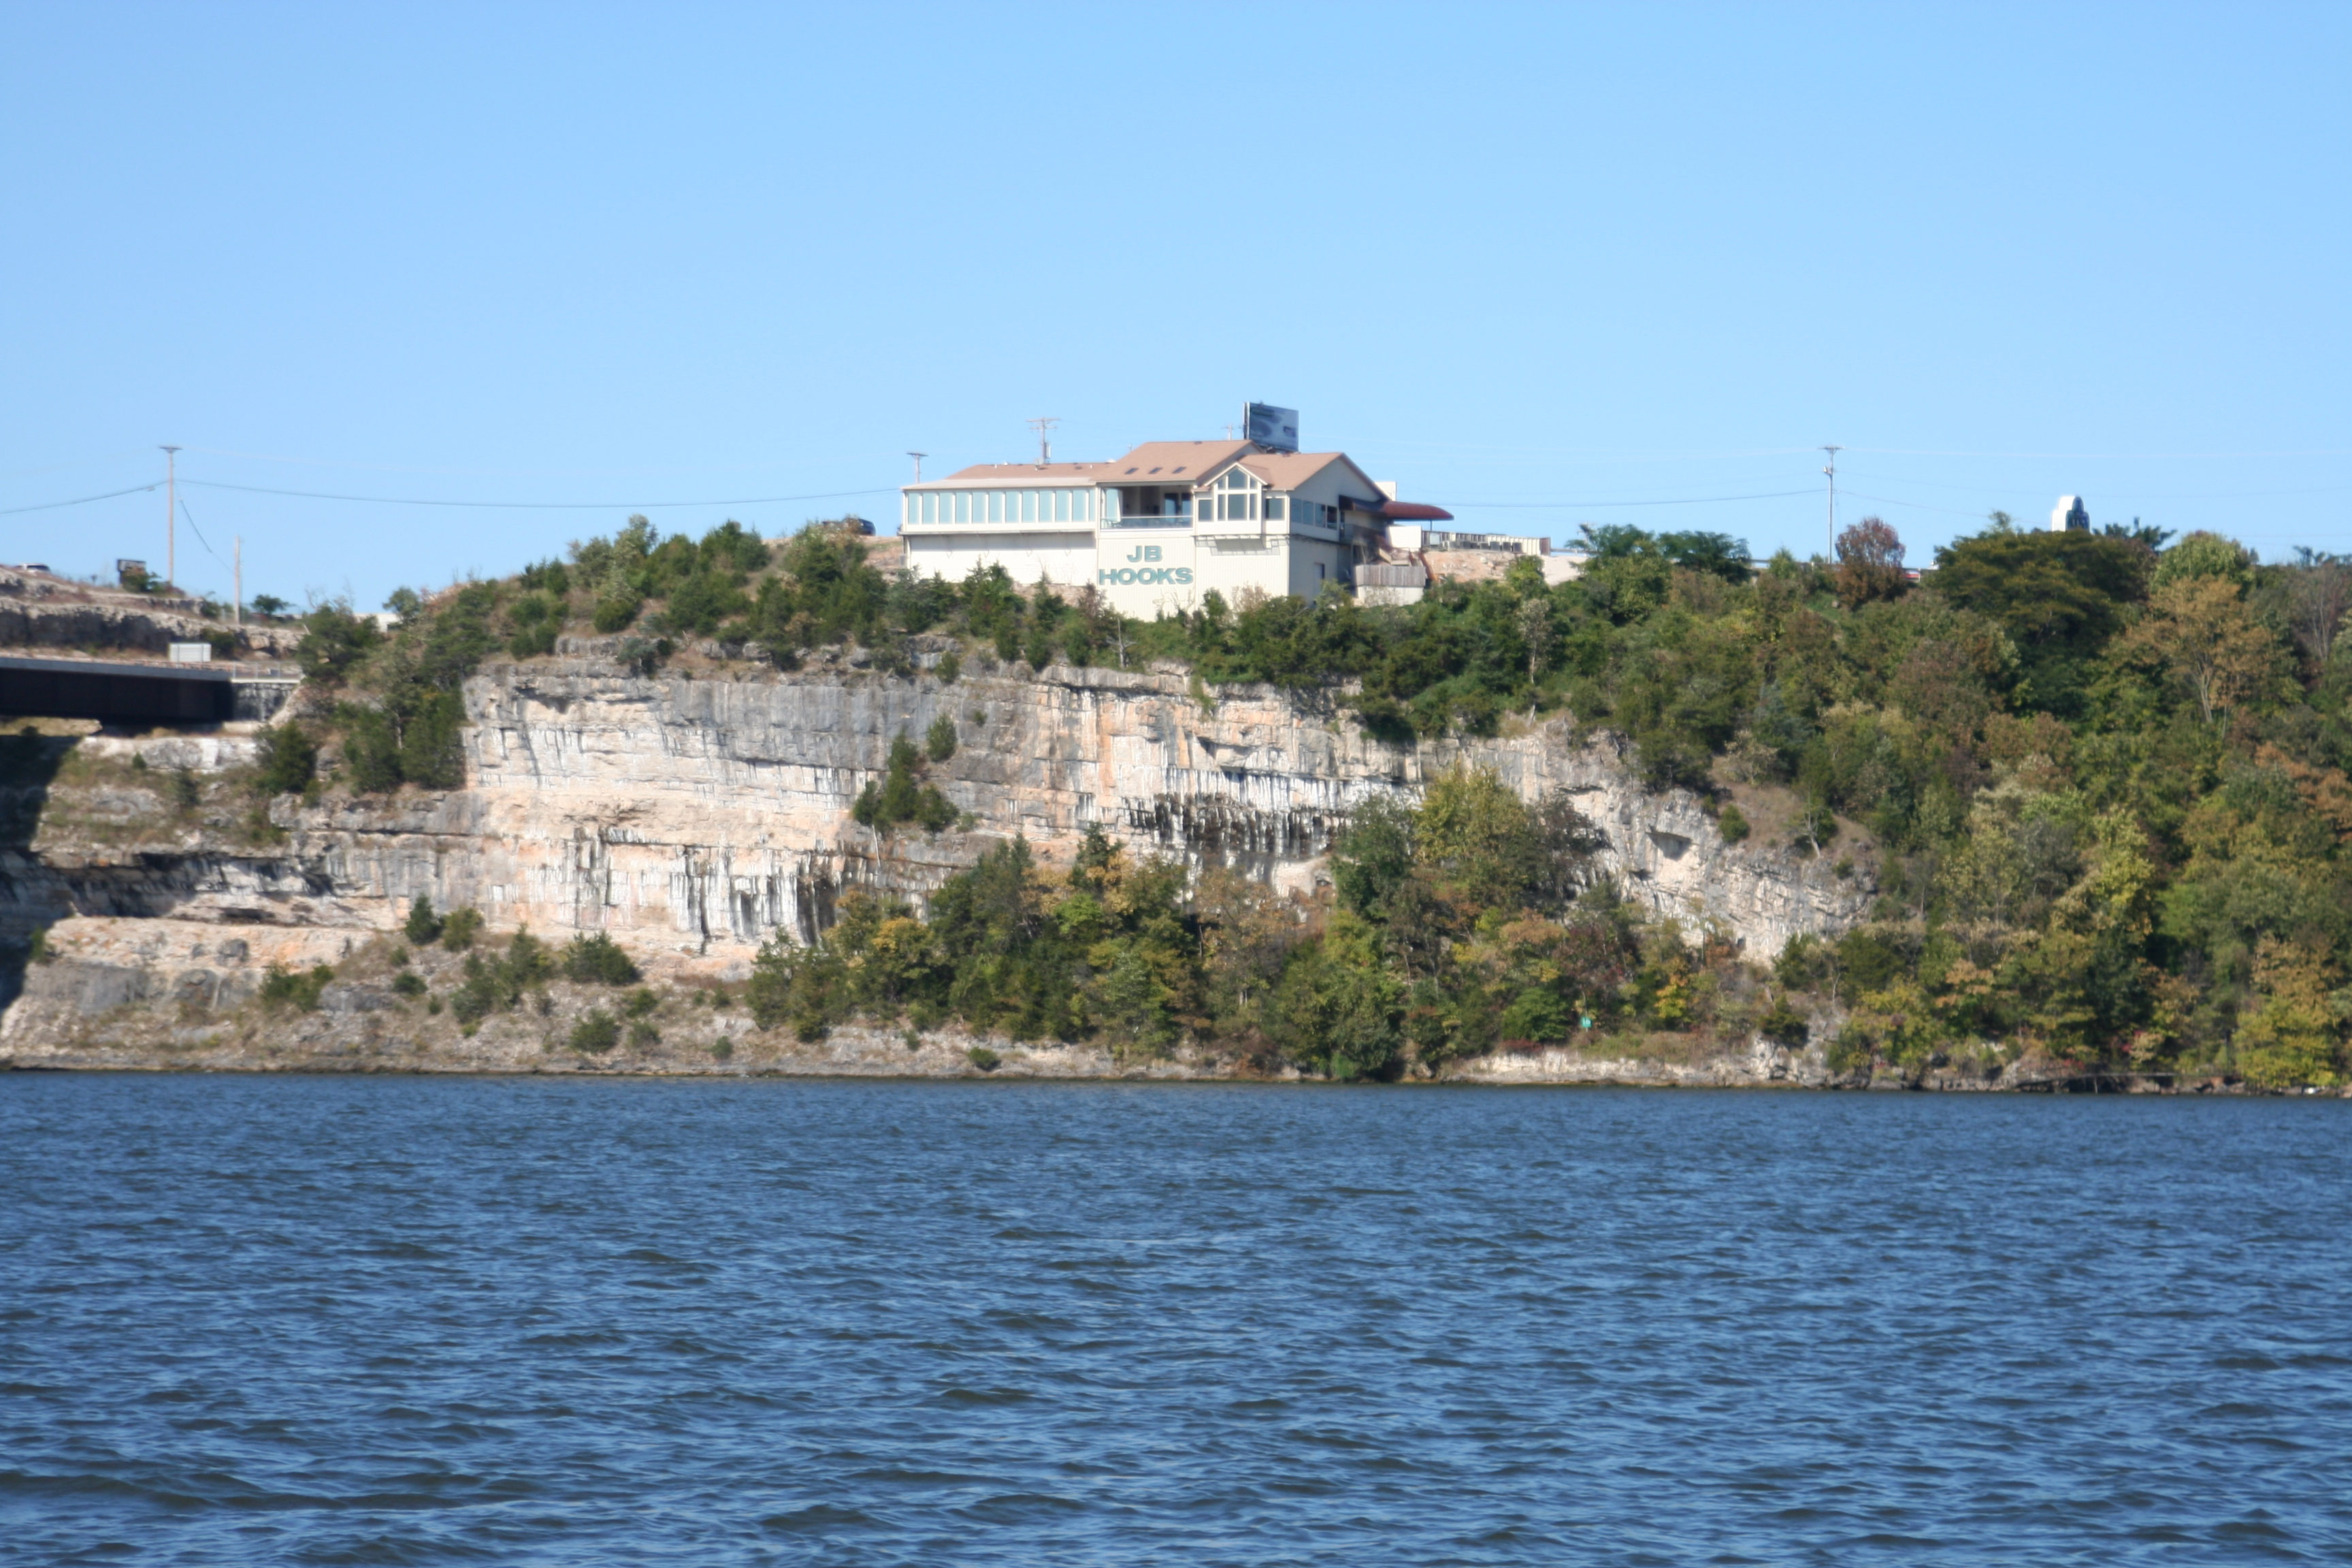 THE 10 BEST Restaurants with a View in Lake of the Ozarks